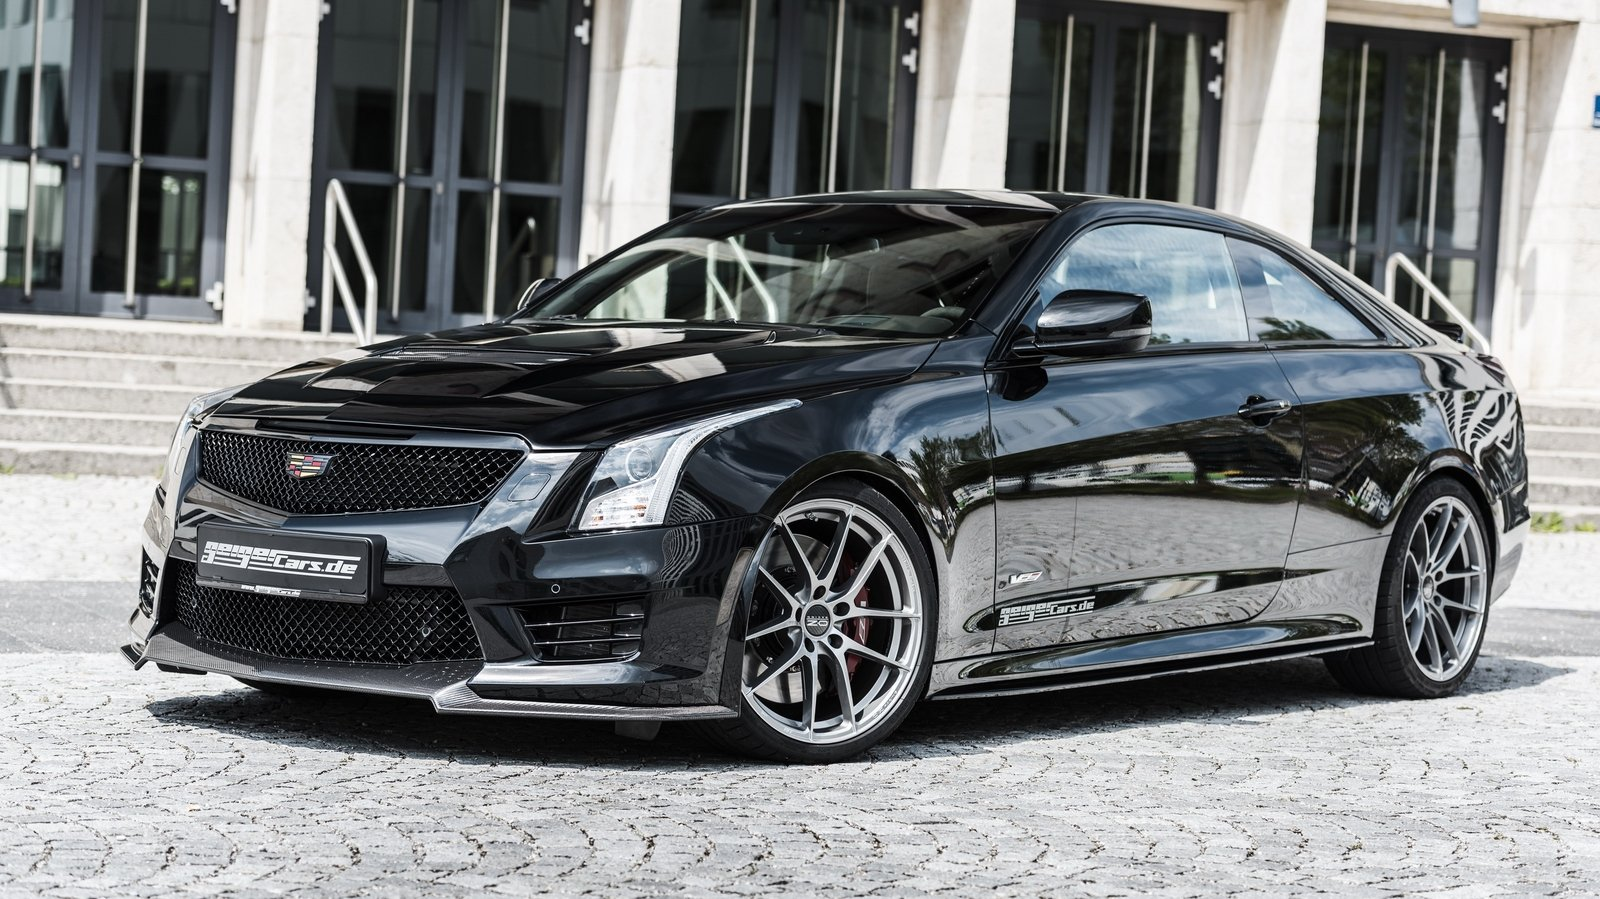 Cadillac Ats V Coupe >> 2016 Cadillac ATS-V Coupe Twin Turbo Black Line By Geiger ...